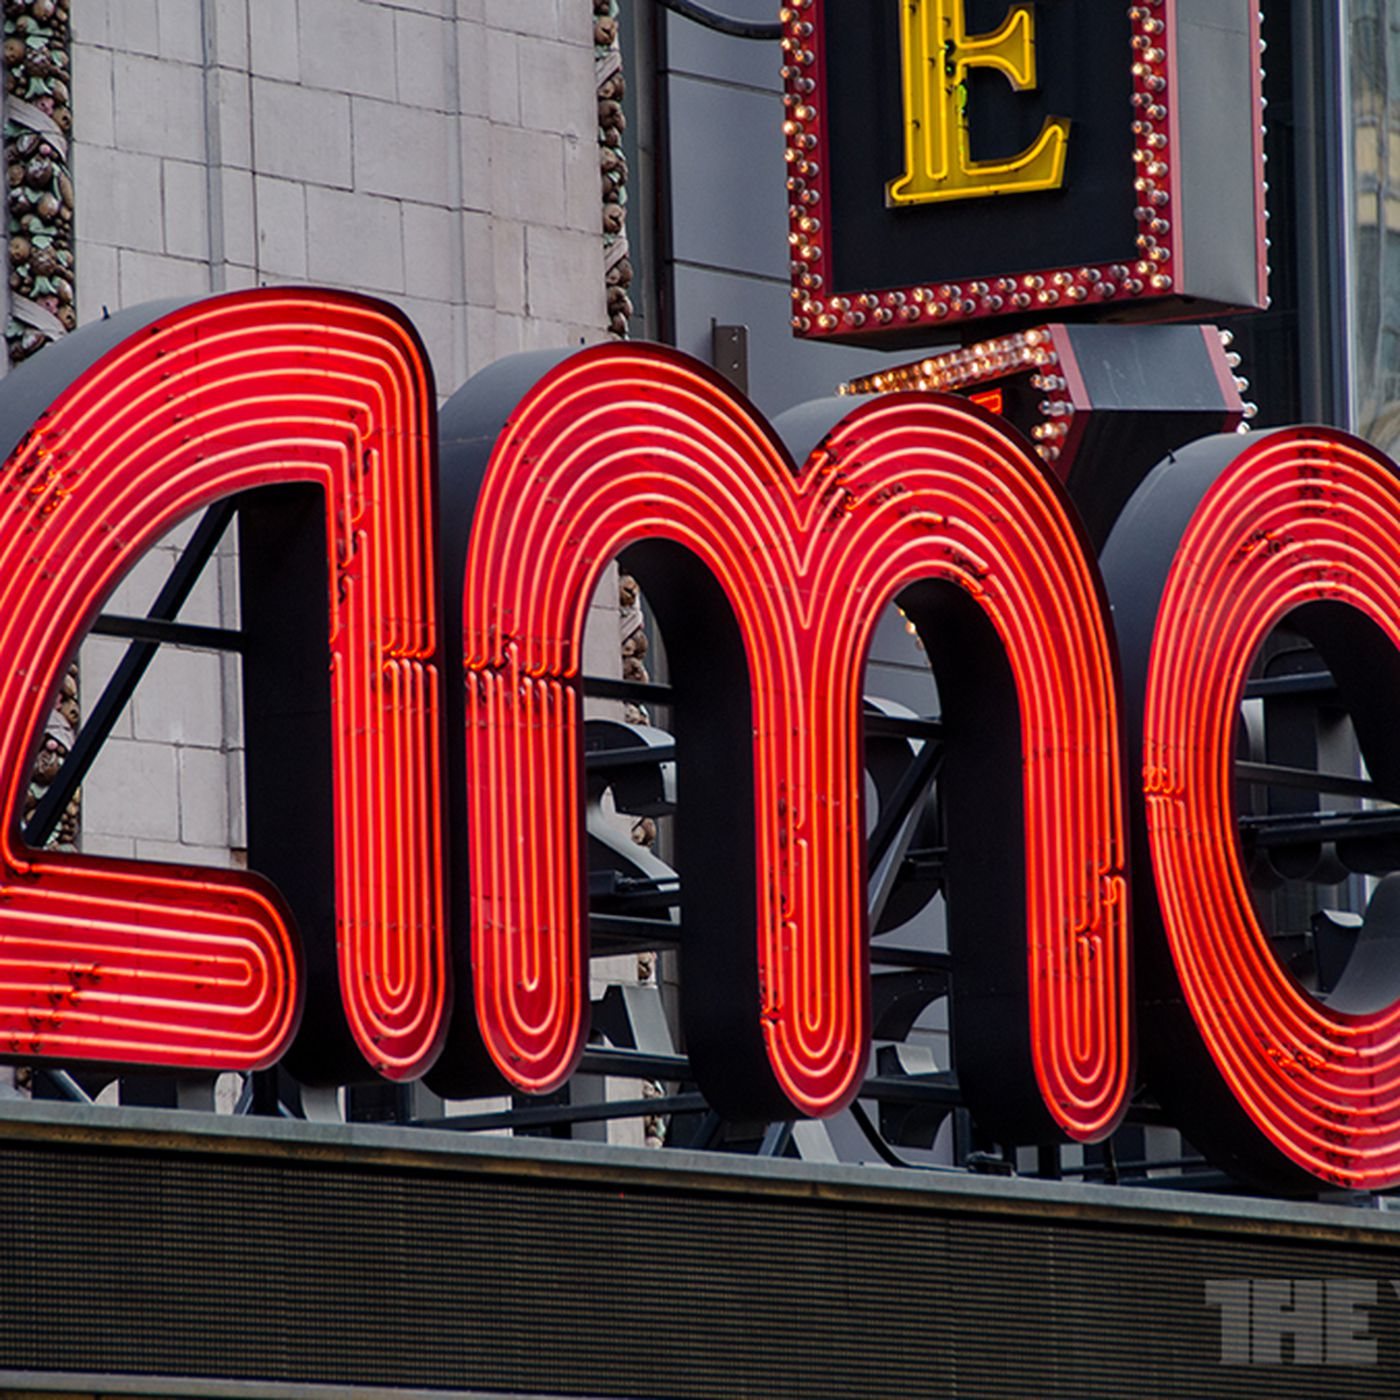 Amc Theaters Will Close Across The Us For Up To 12 Weeks And Pause All A List Memberships The Verge Amstar underwent further development to enable appraisal of systematic reviews of randomised and the revised instrument (amstar 2) retains 10 of the original domains, has 16 items in total. amc theaters will close across the us